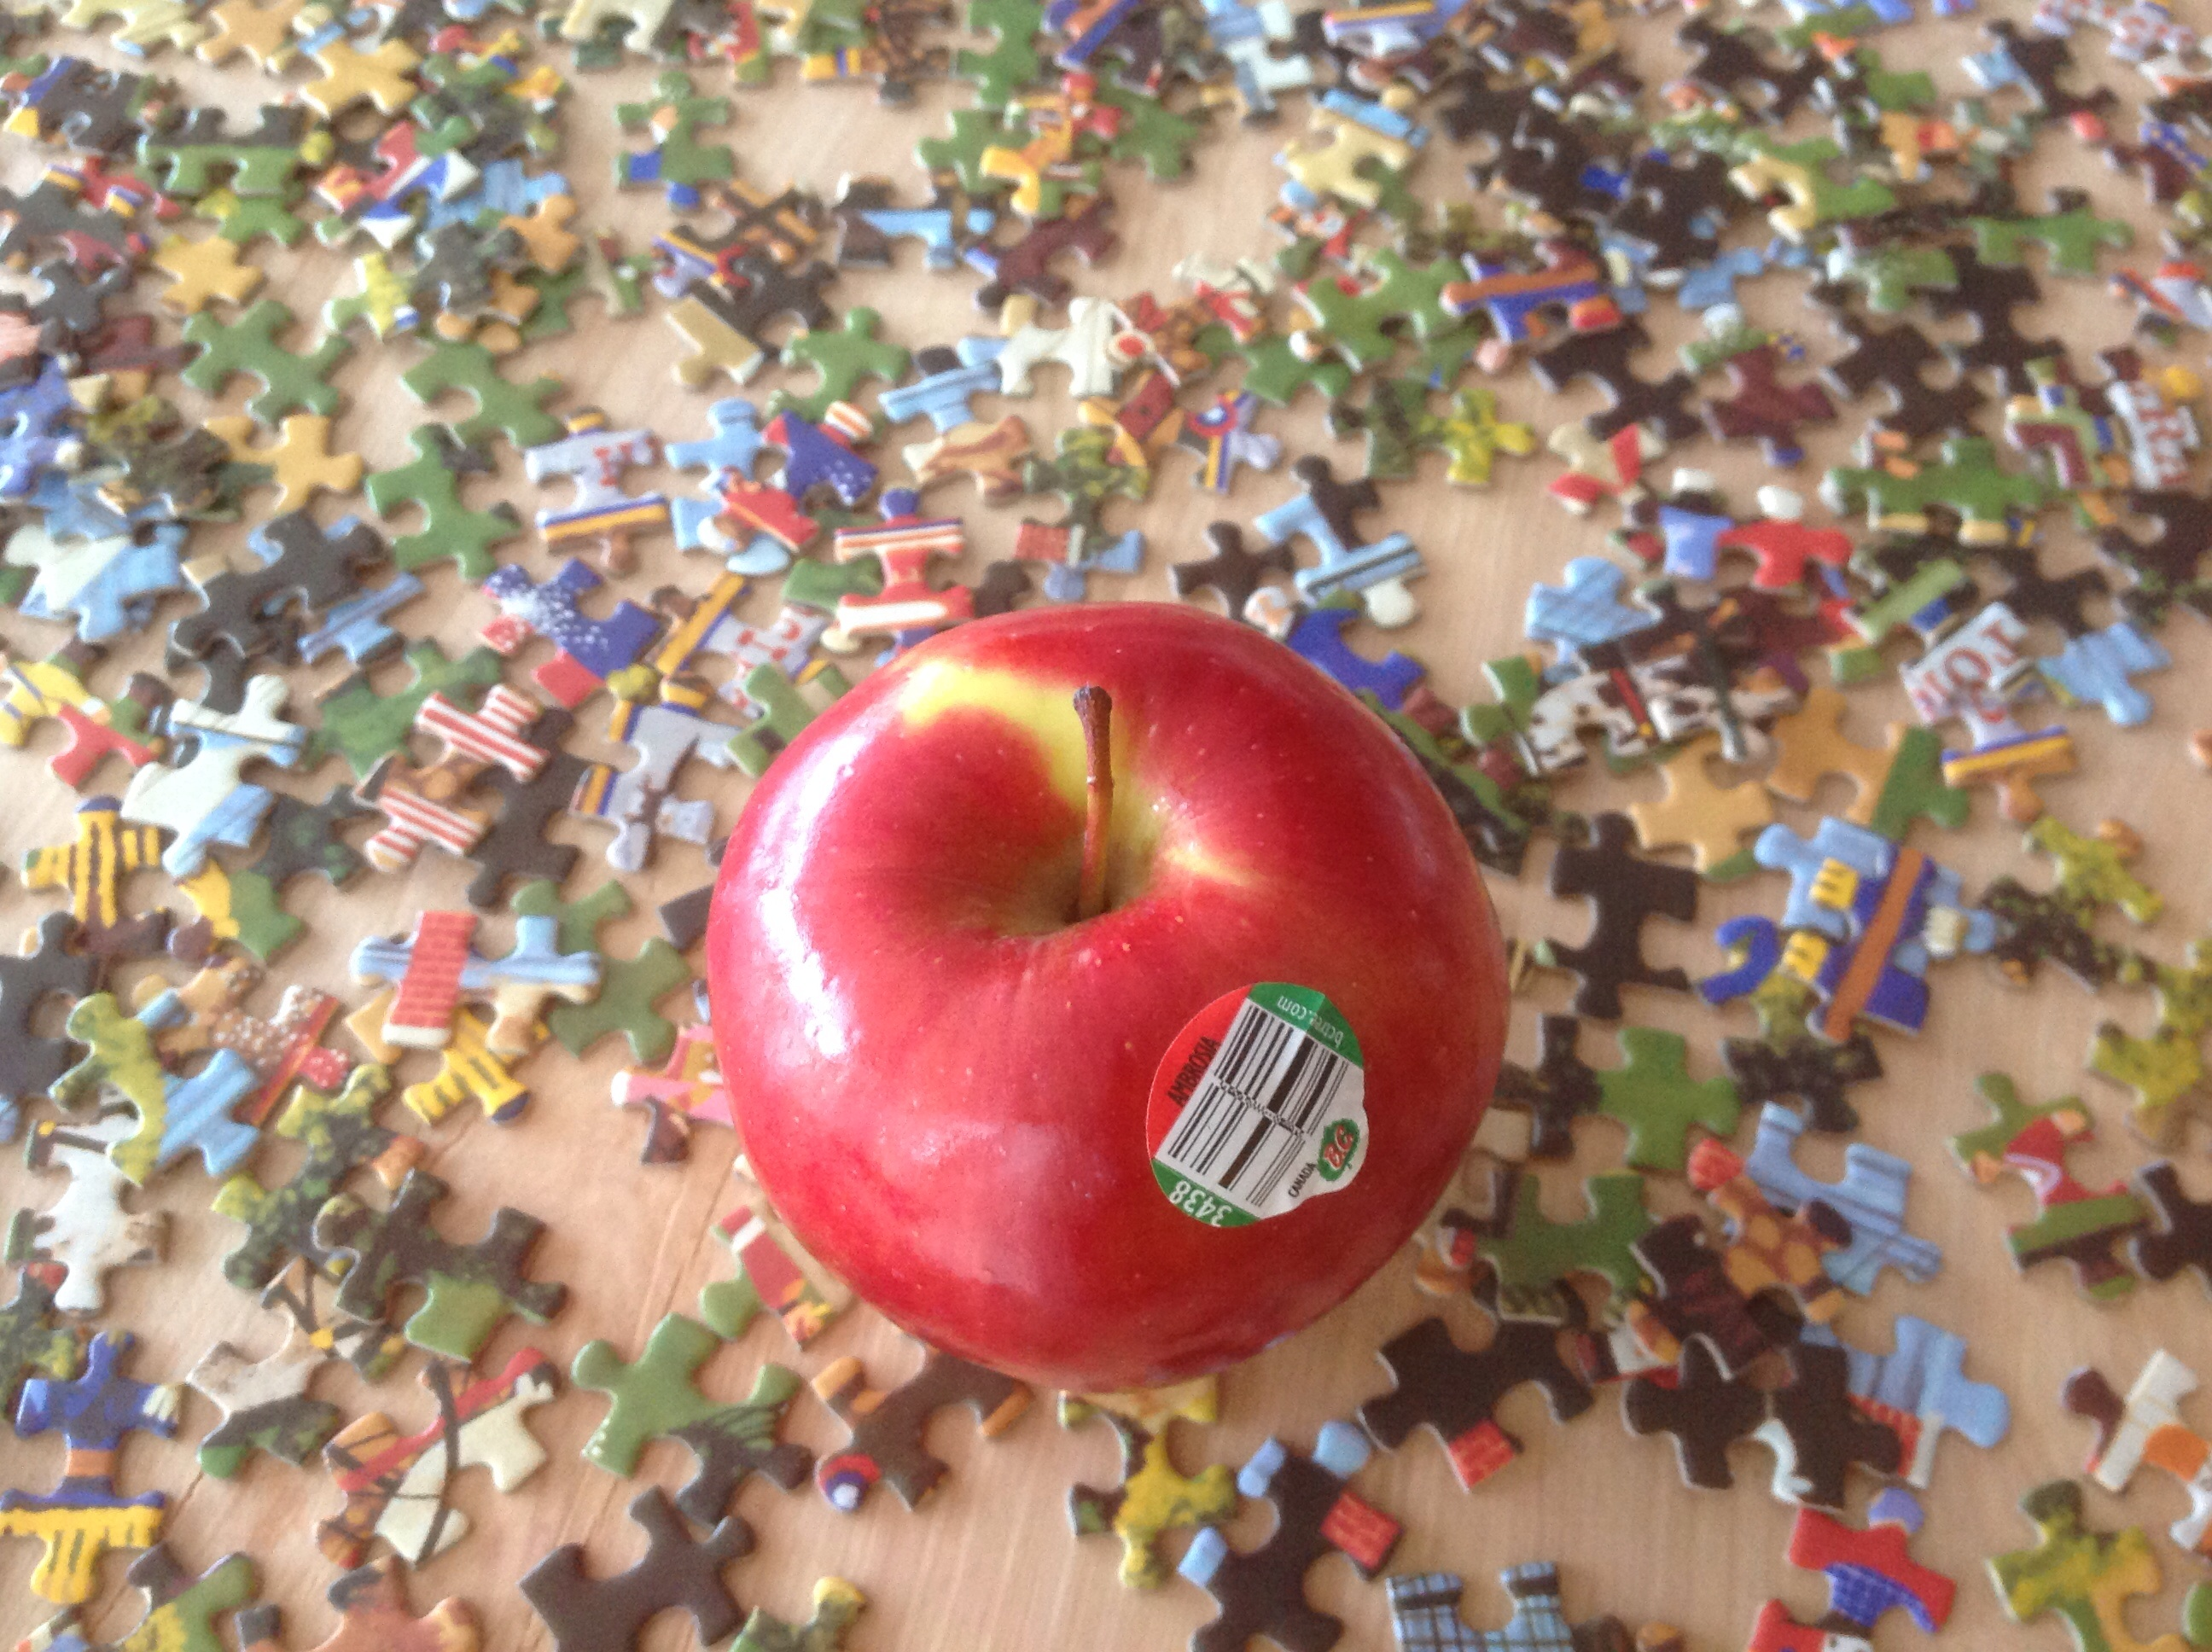 puzzling with apples